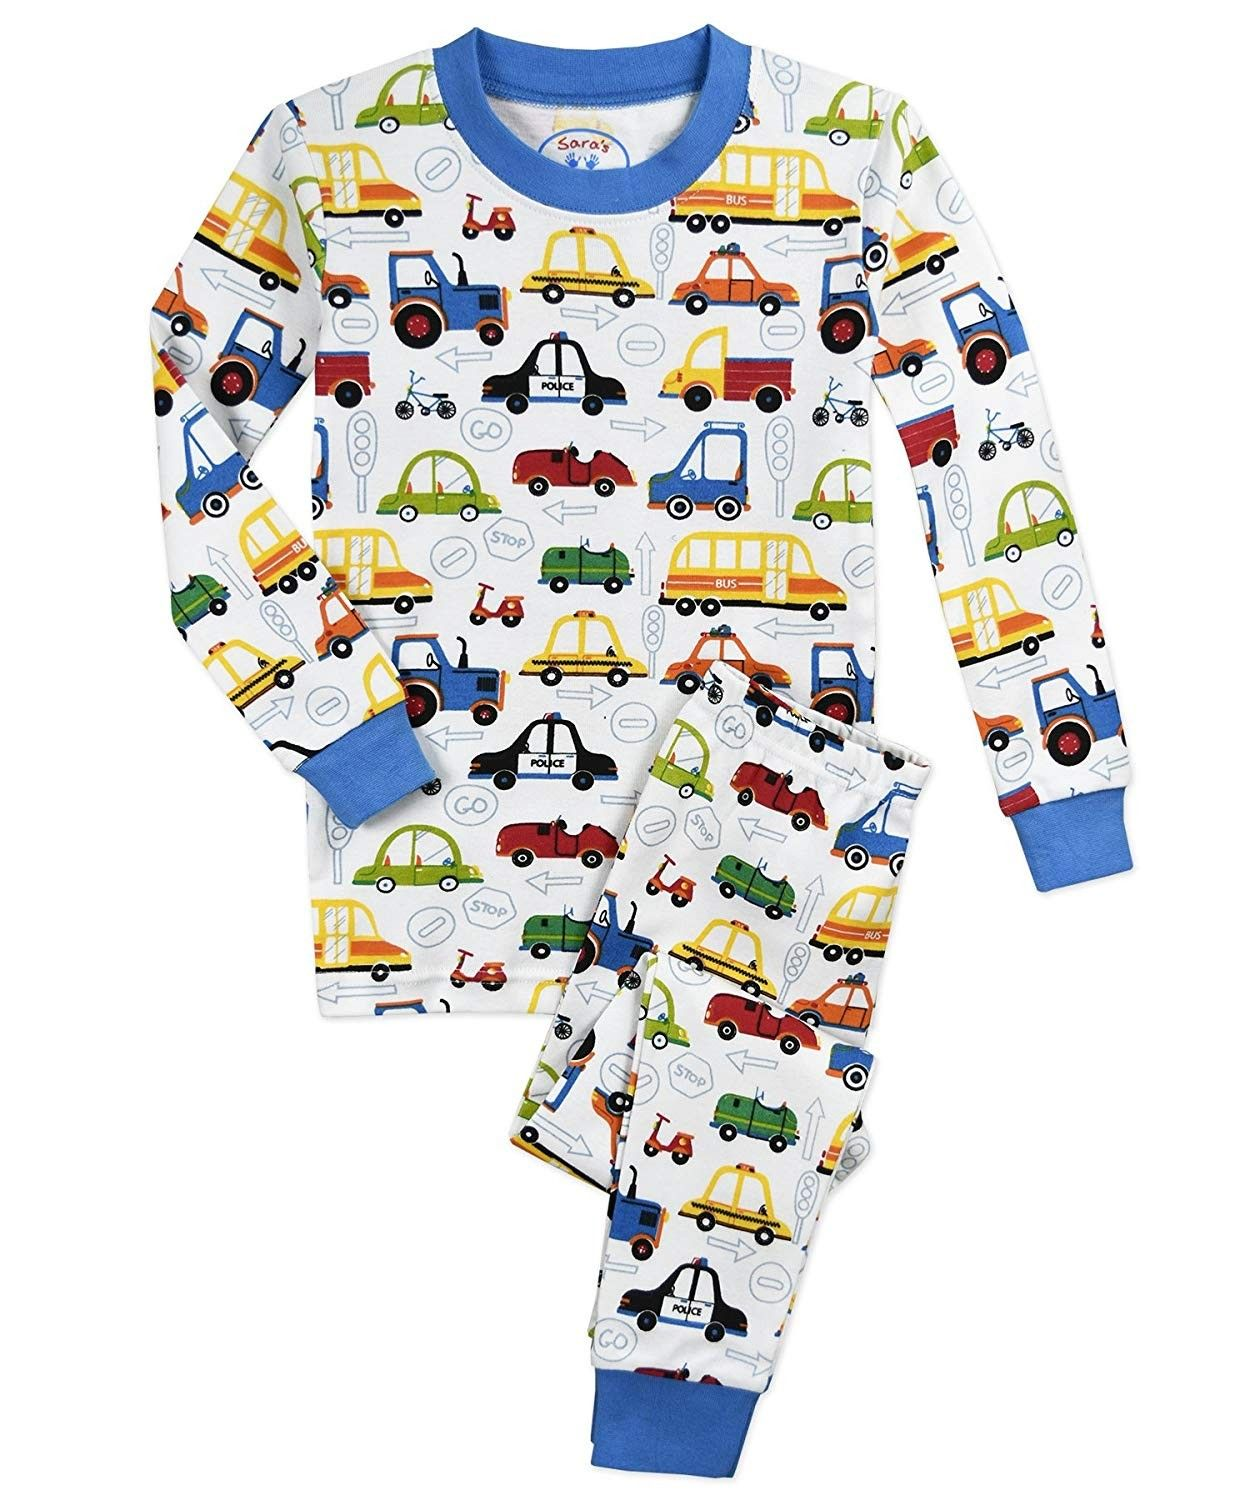 Baby Boys Cotton Clothing Kid Cars Long Sleeve Outfit+Pants Pajama Set Sleepwear